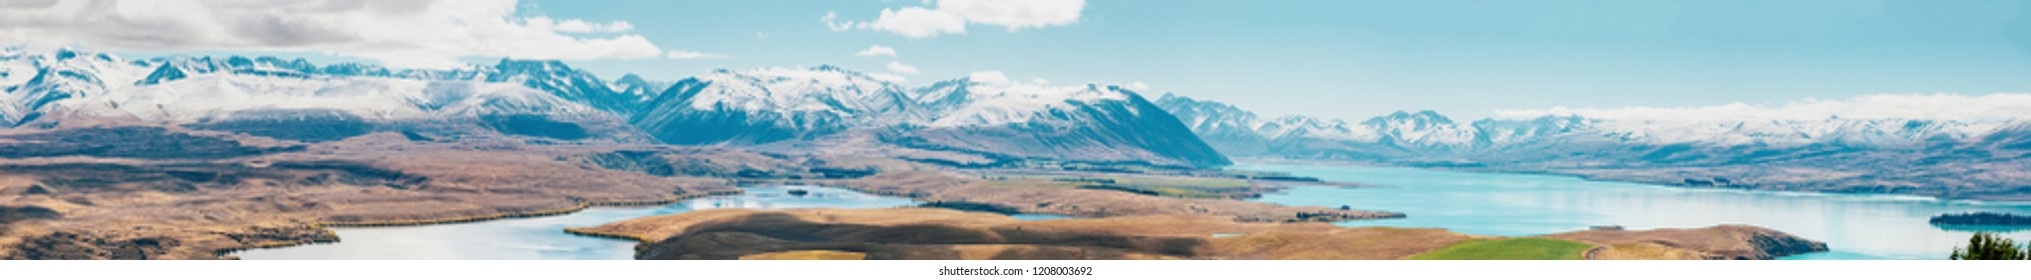 amazing landscapes viewed from Tekapo observatory, New Zealand